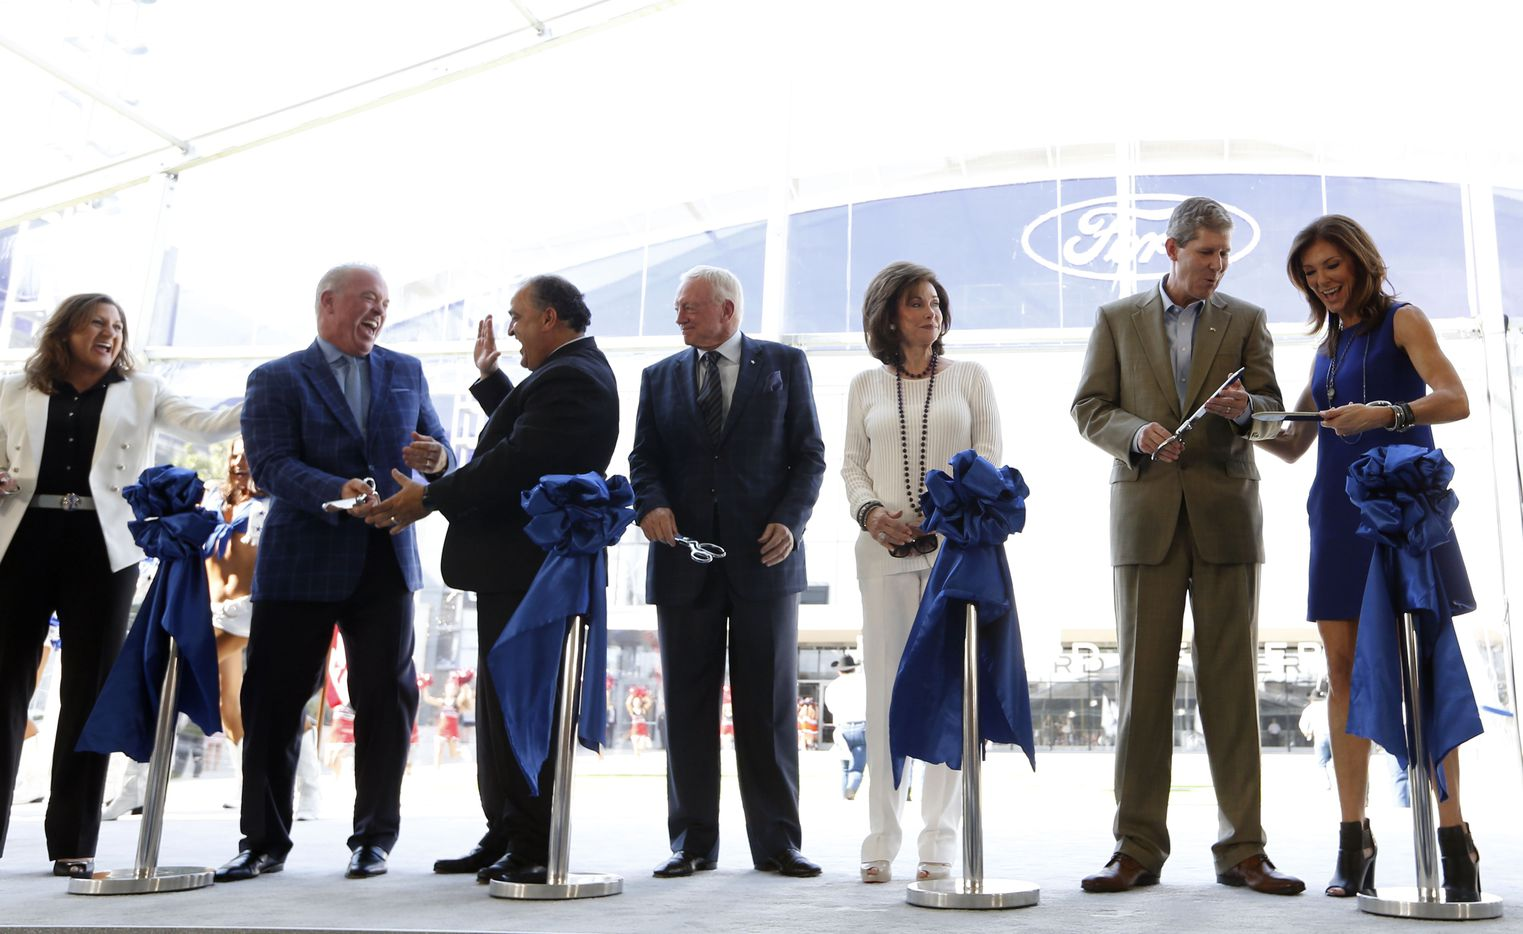 Representatives from Ford, the Dallas Cowboys, the city of Frisco and Frisco ISD celebrate after cutting the ribbon at a ceremony at the Dallas Cowboys new headquarters at The Star in Frisco on Sunday, Aug. 21, 2016.